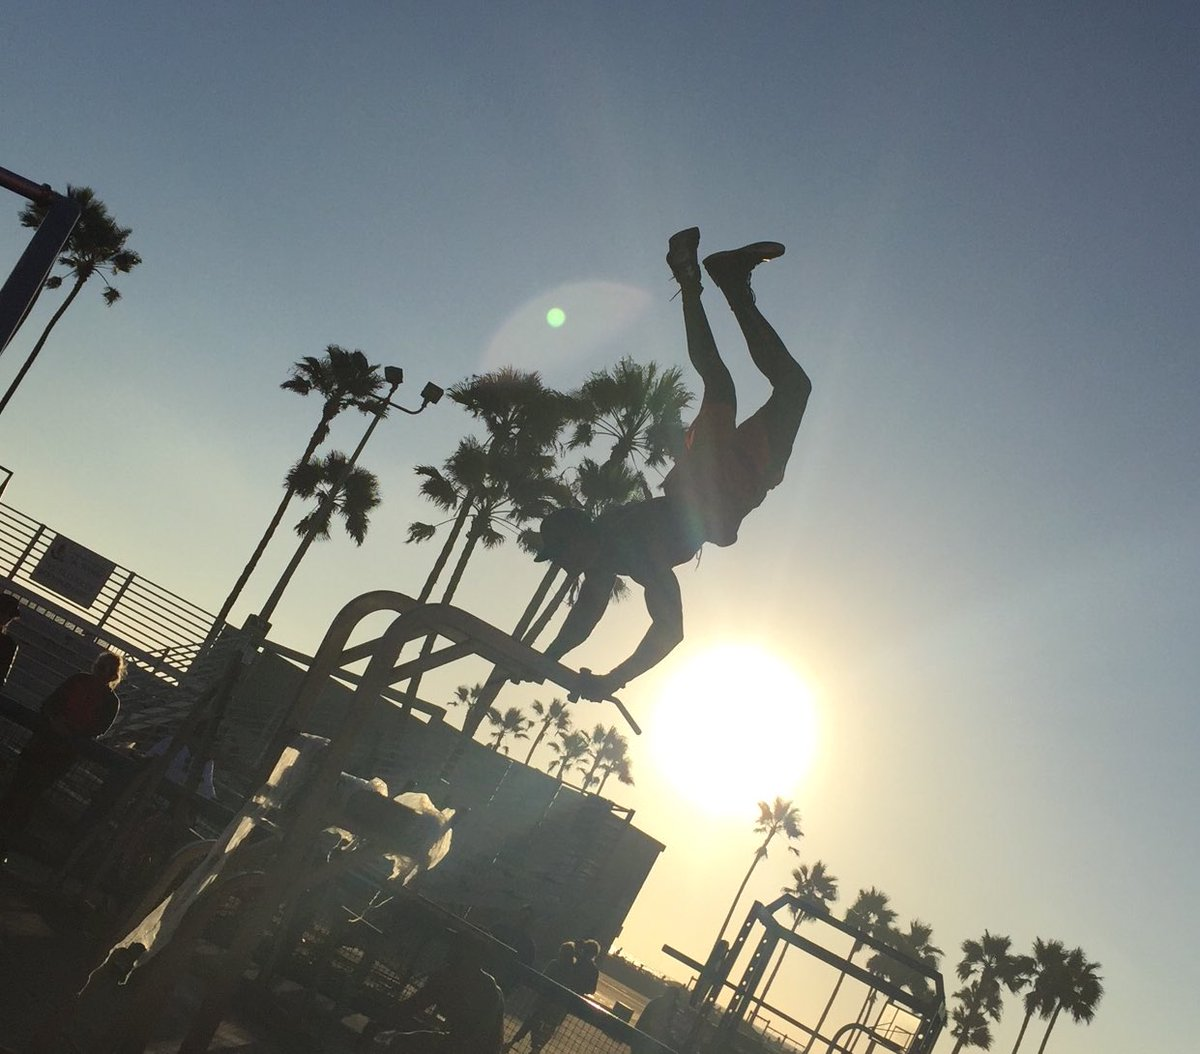 For most of our life on Earth we either resist or succumb to the force of gravity. At Muscle Beach, gravity loses every time.  (Venice, California - Sept 2016).  https://t.co/6T511LQmFN